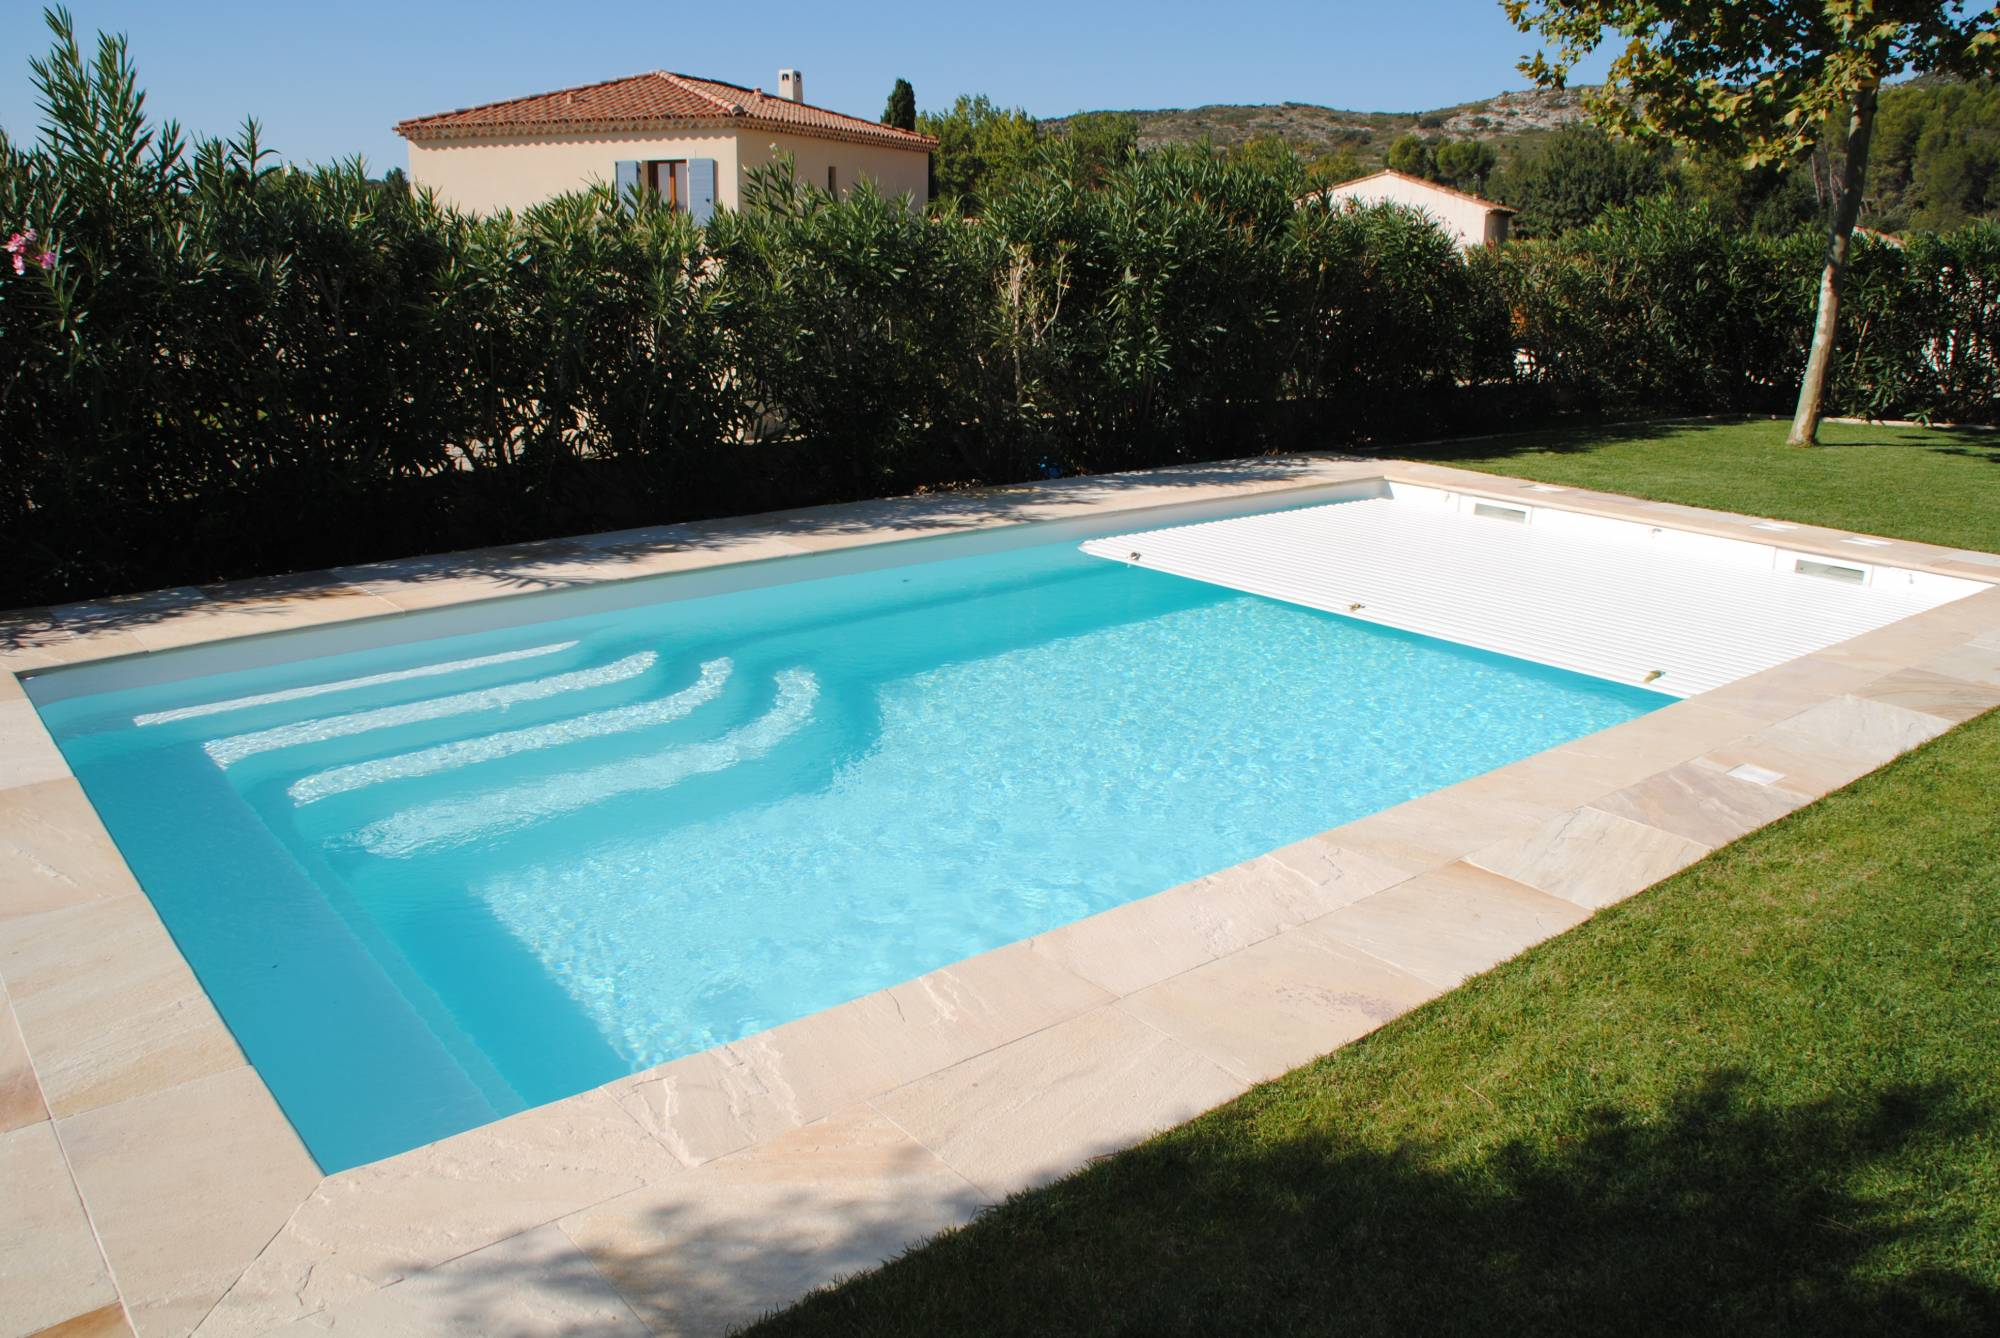 Piscine coque polyester volet immerg marseille france for Piscine a coque